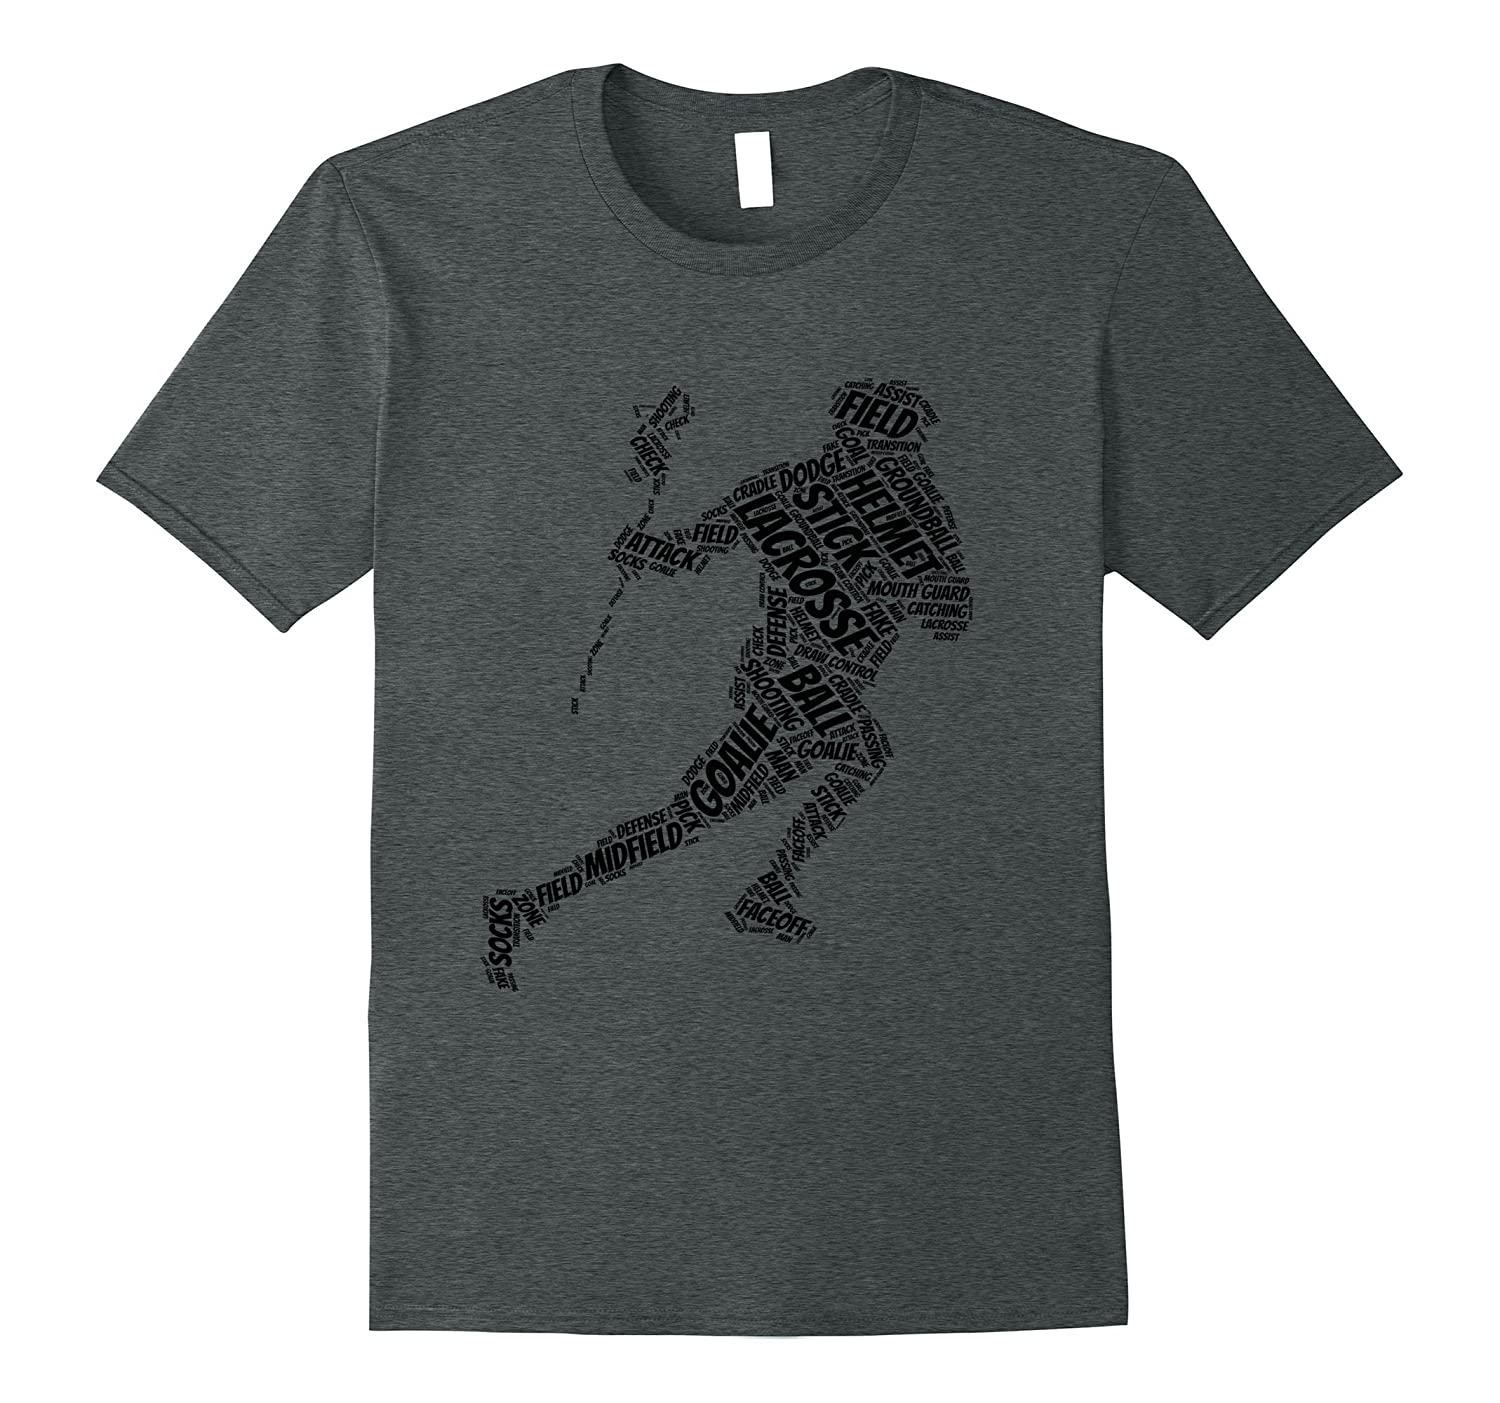 lacrosse goalie Player running with stick and bal T-shirt-Vaci